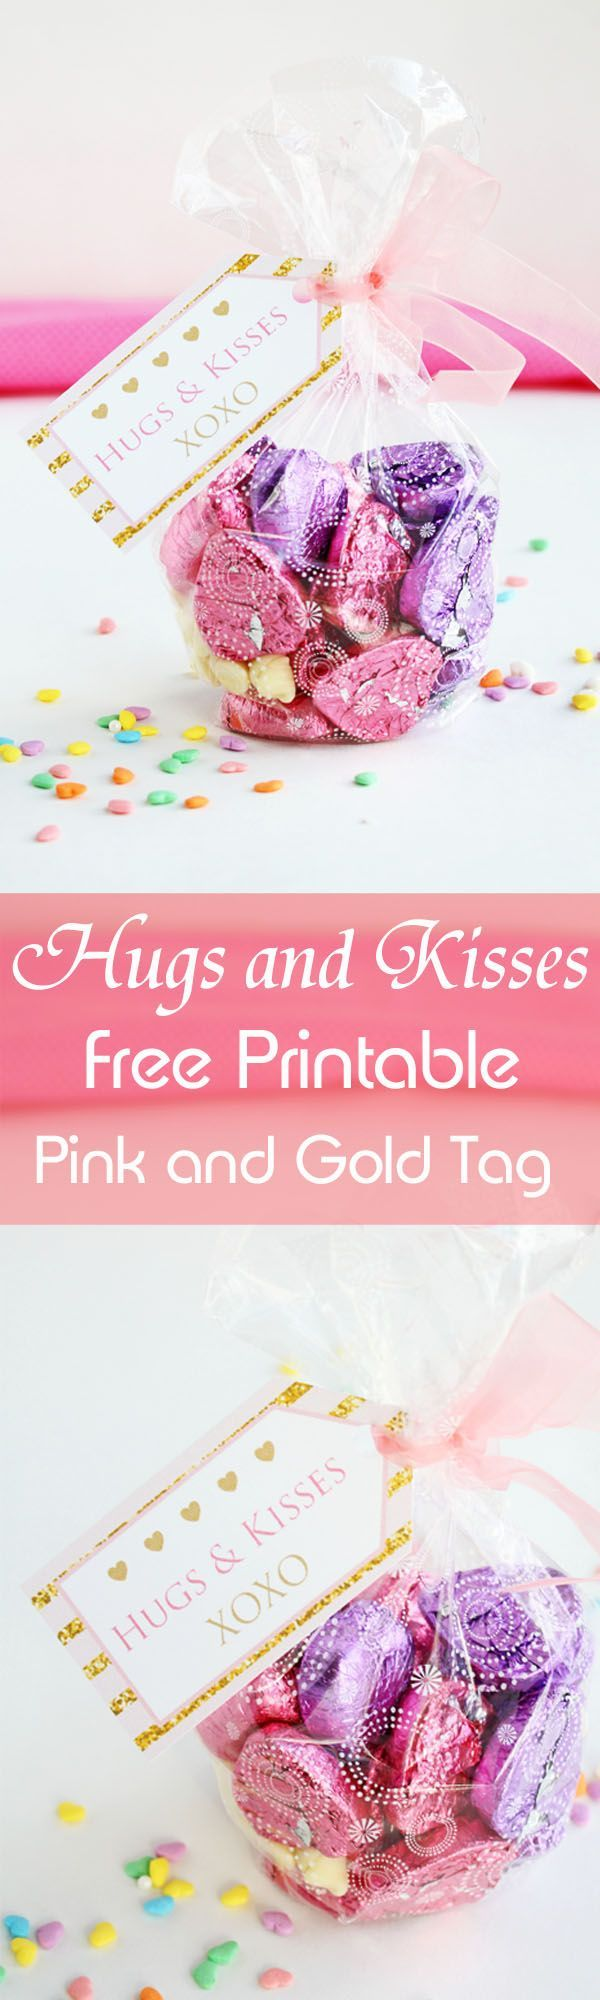 Hugs and kisses free printable pink and gold tag free printable hugs and kisses free printable pink and gold tag negle Choice Image